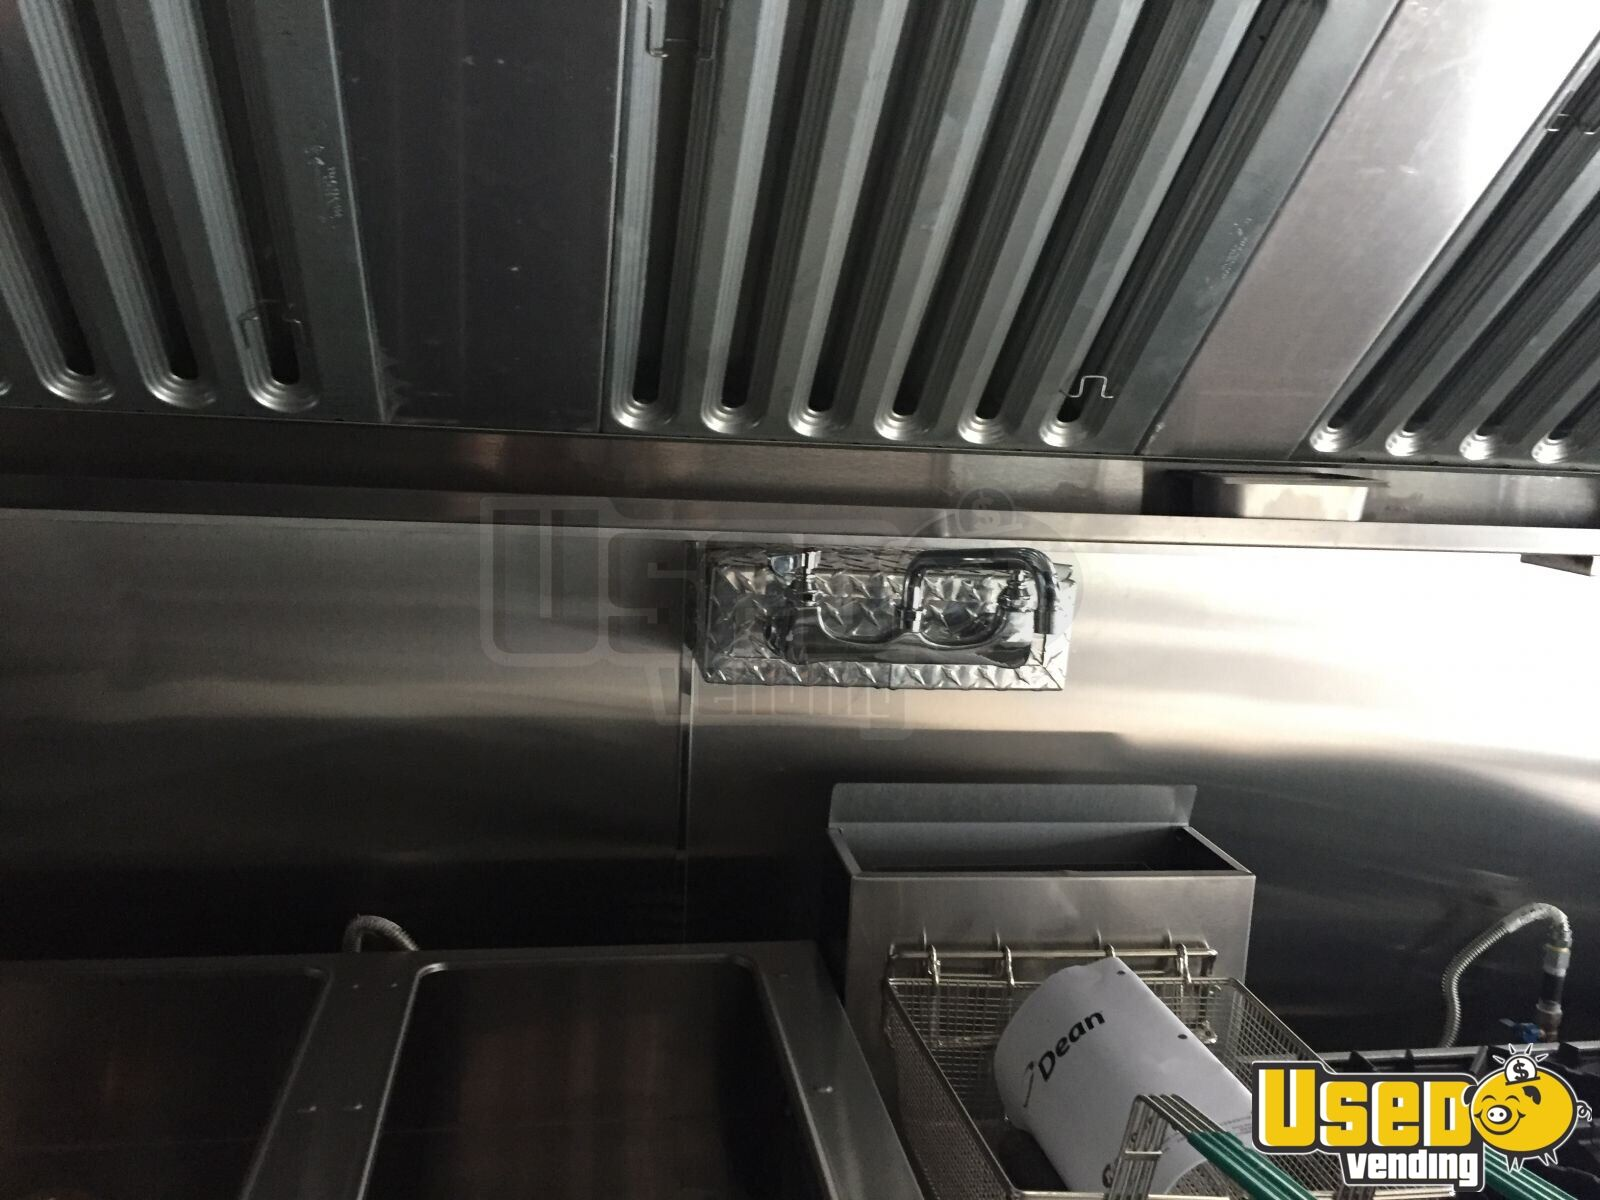 1990 Chevy 6t042 Grunman All-purpose Food Truck Upright Freezer Florida Gas Engine for Sale - 16